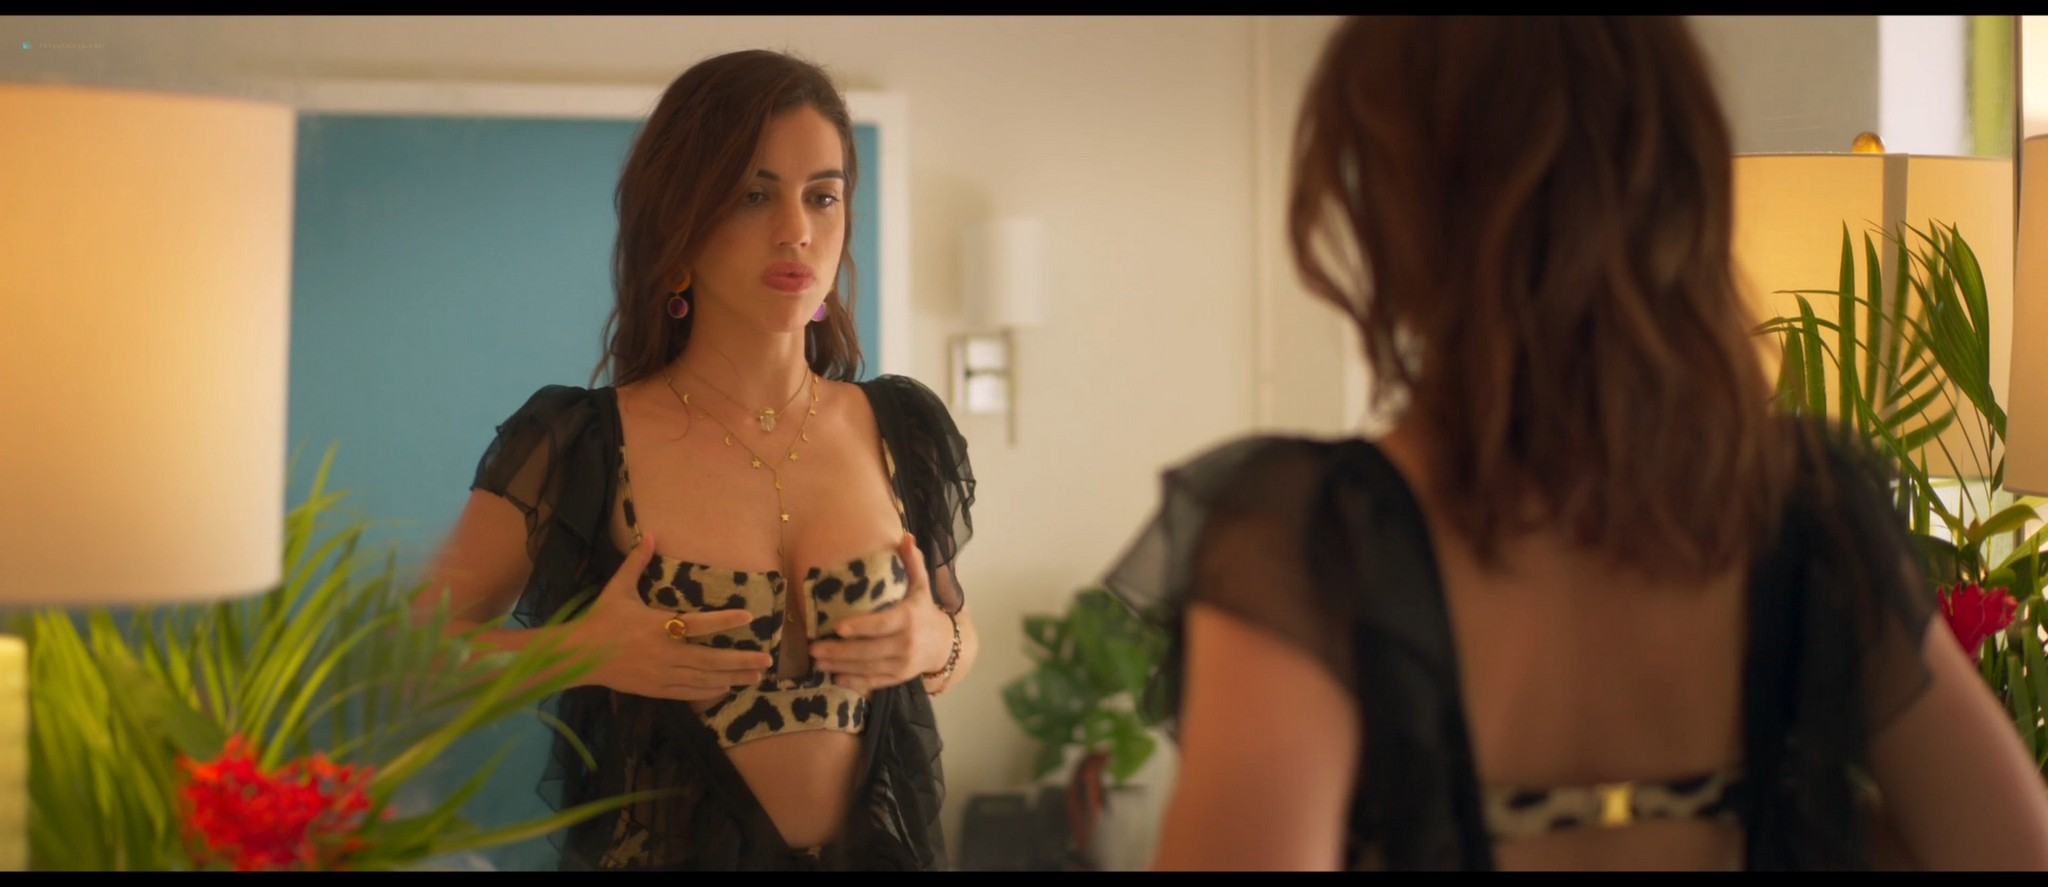 Olivia Culpo hot Adelaide Kane sexy others topless and hot - The Swing of Things (2020) HD 1080p Web (6)